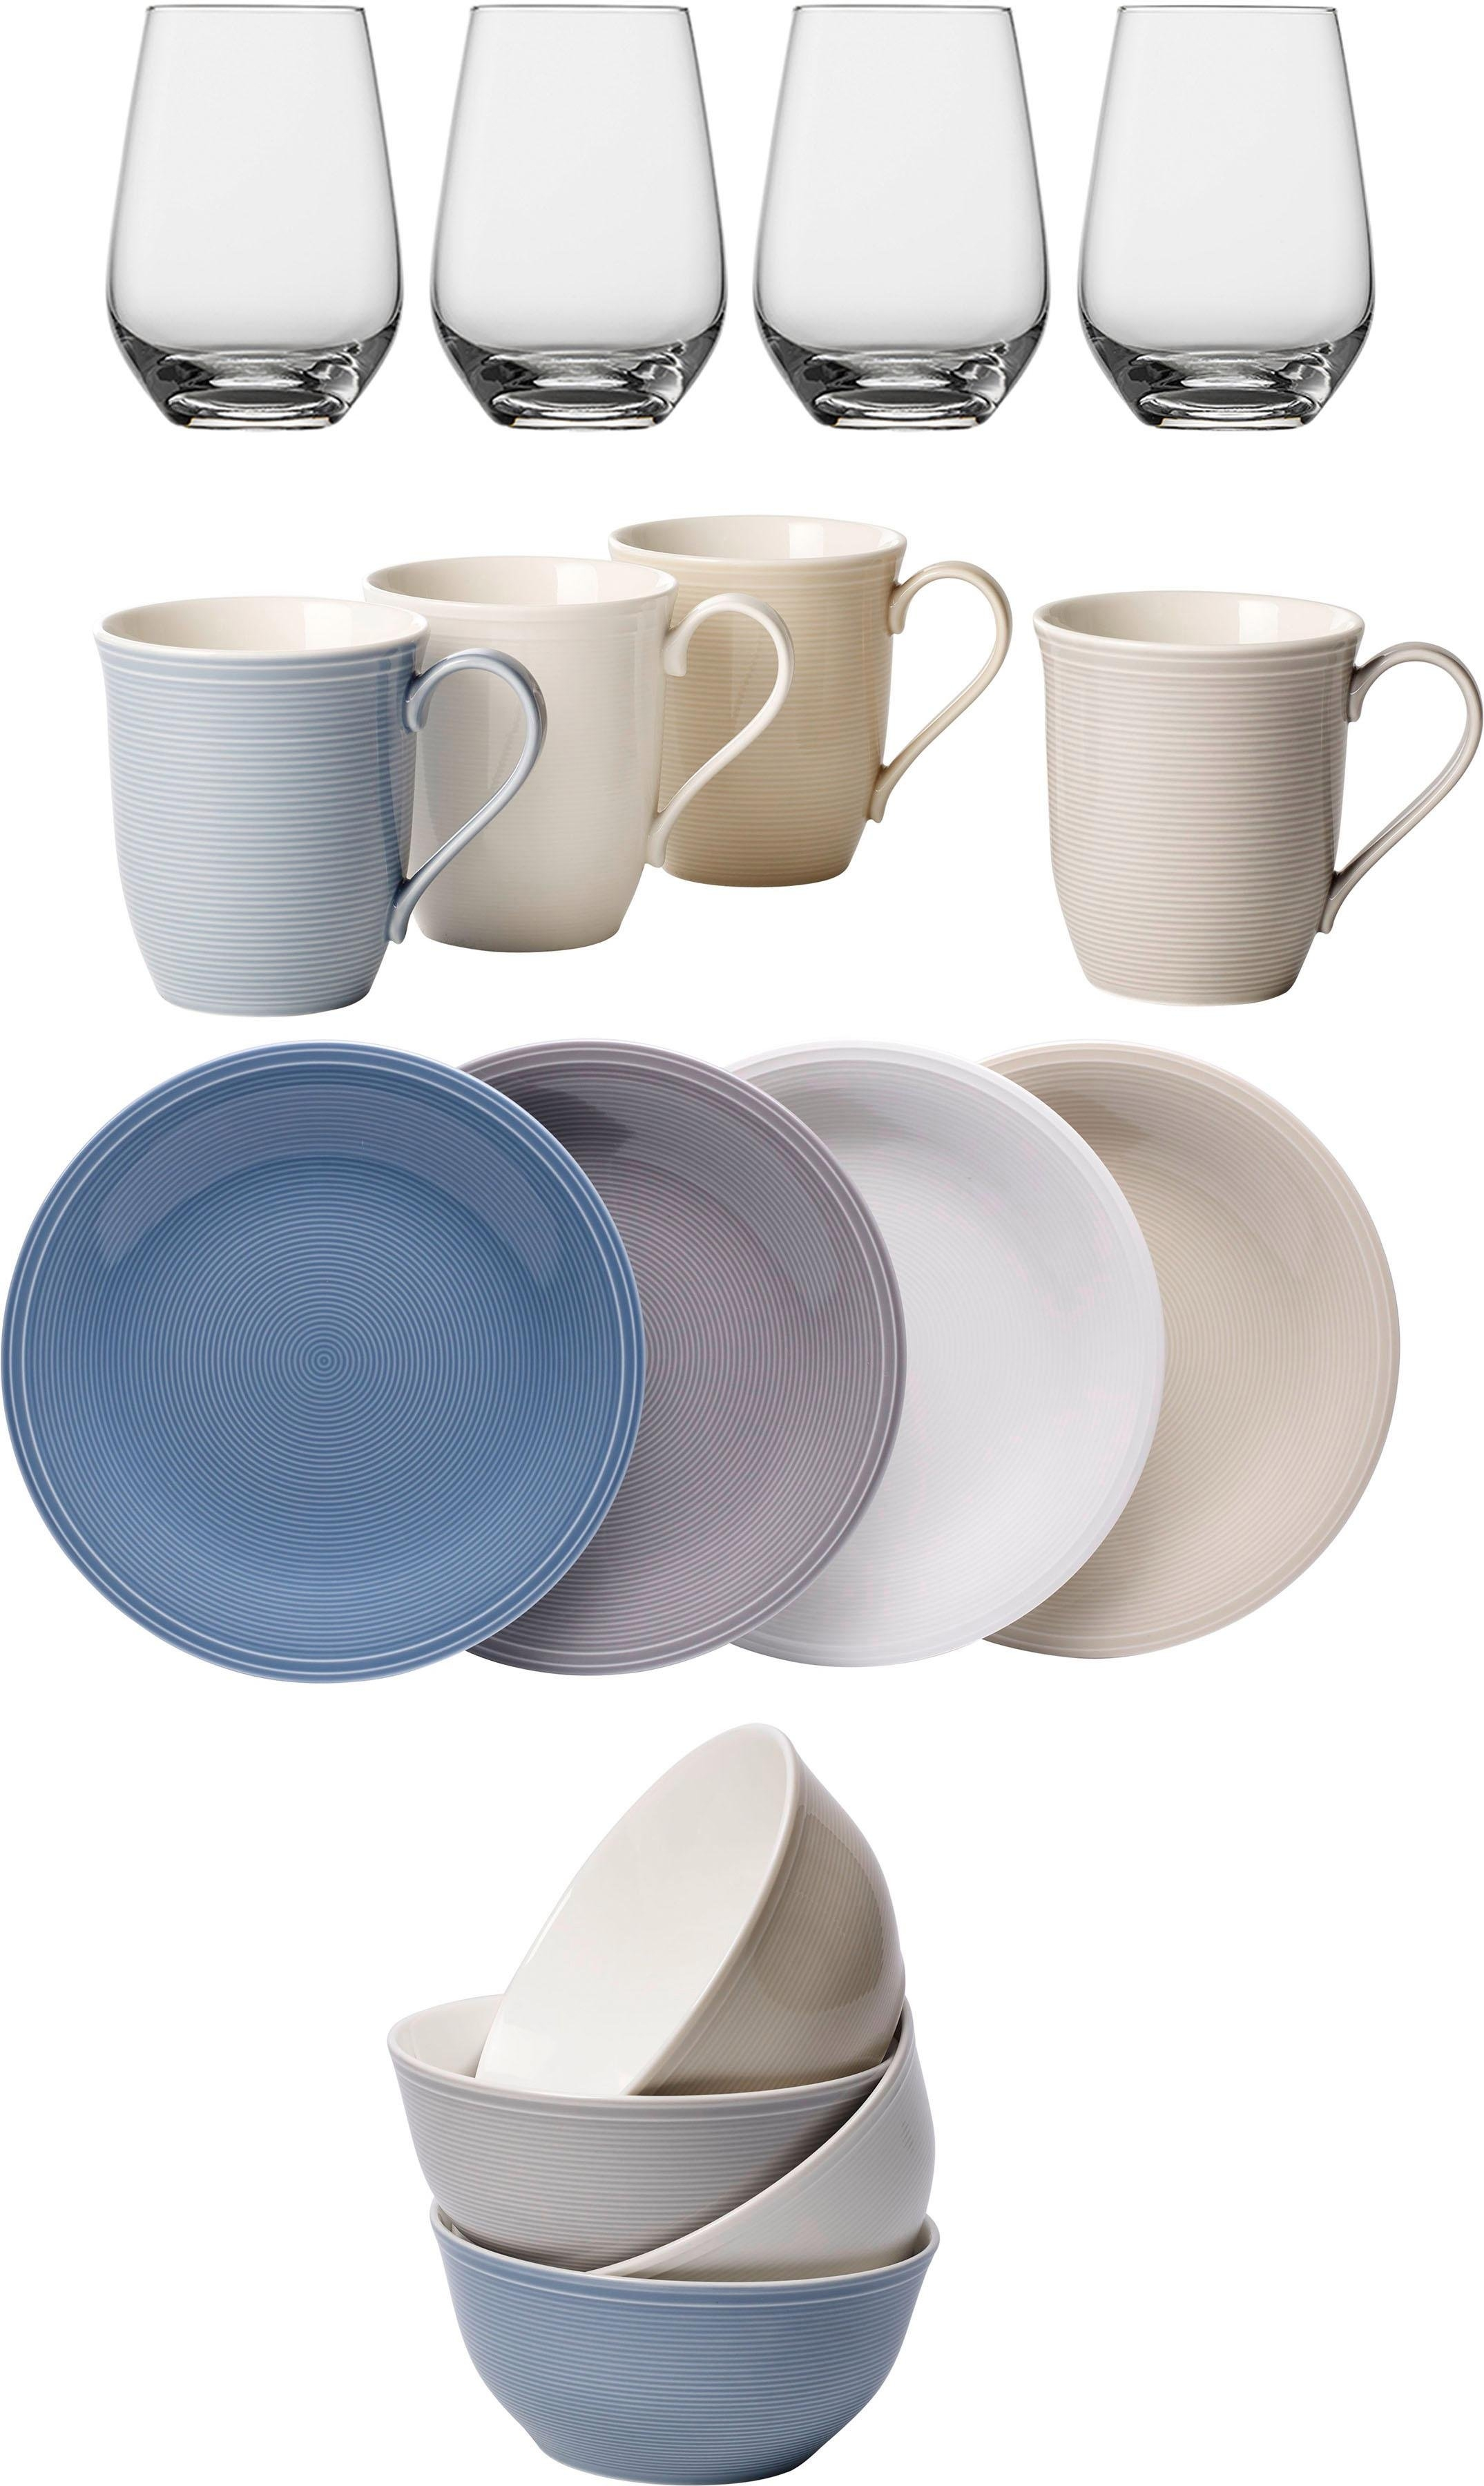 Villeroy En Boch Borden.Vivo Villeroy Boch Group Combi Servies Color Loop